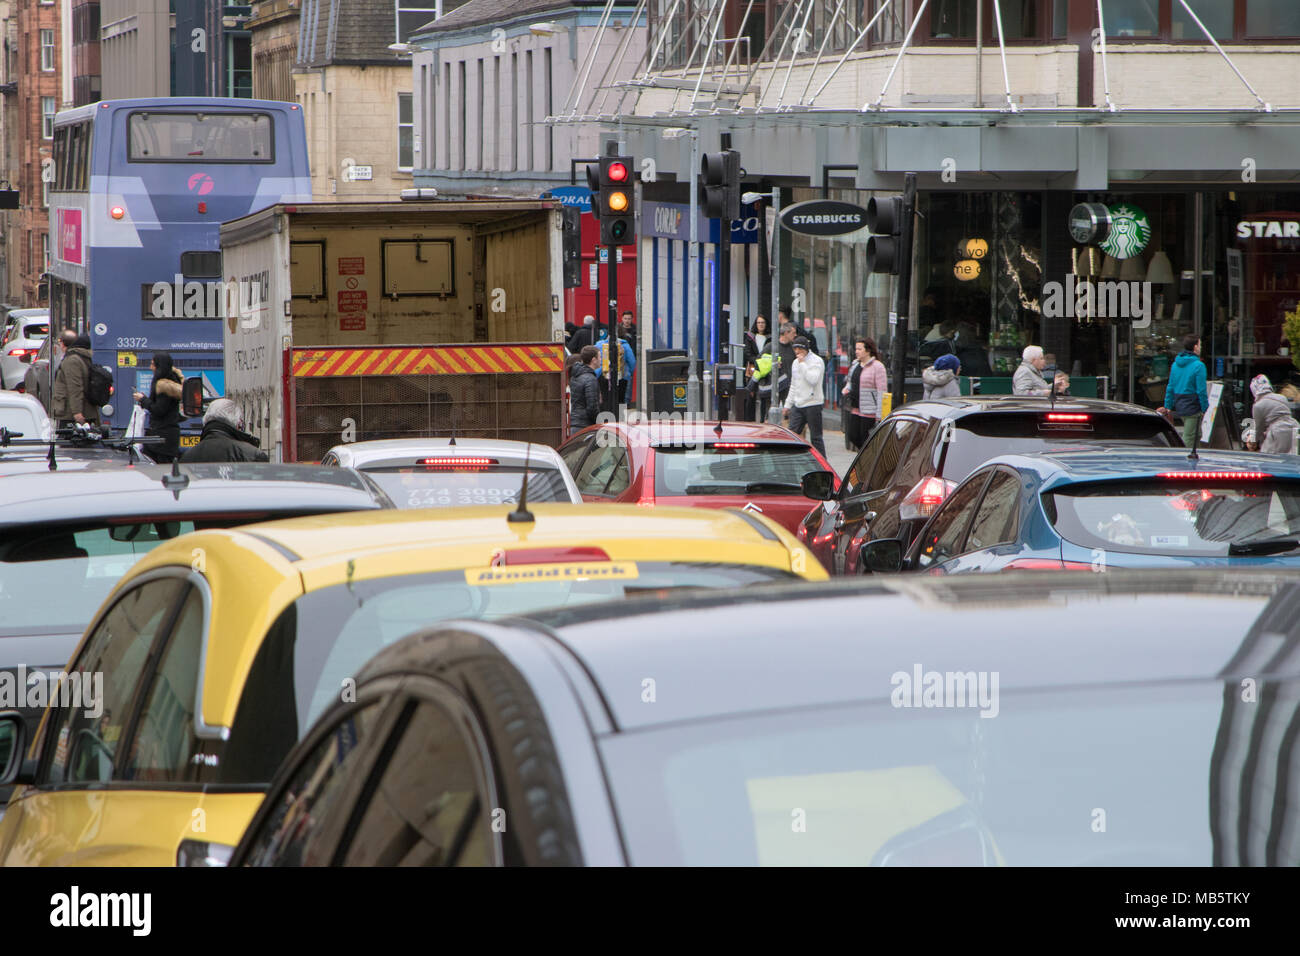 Busy traffic in Glasgow, Scotland, depicting congestion and pollution - Stock Image